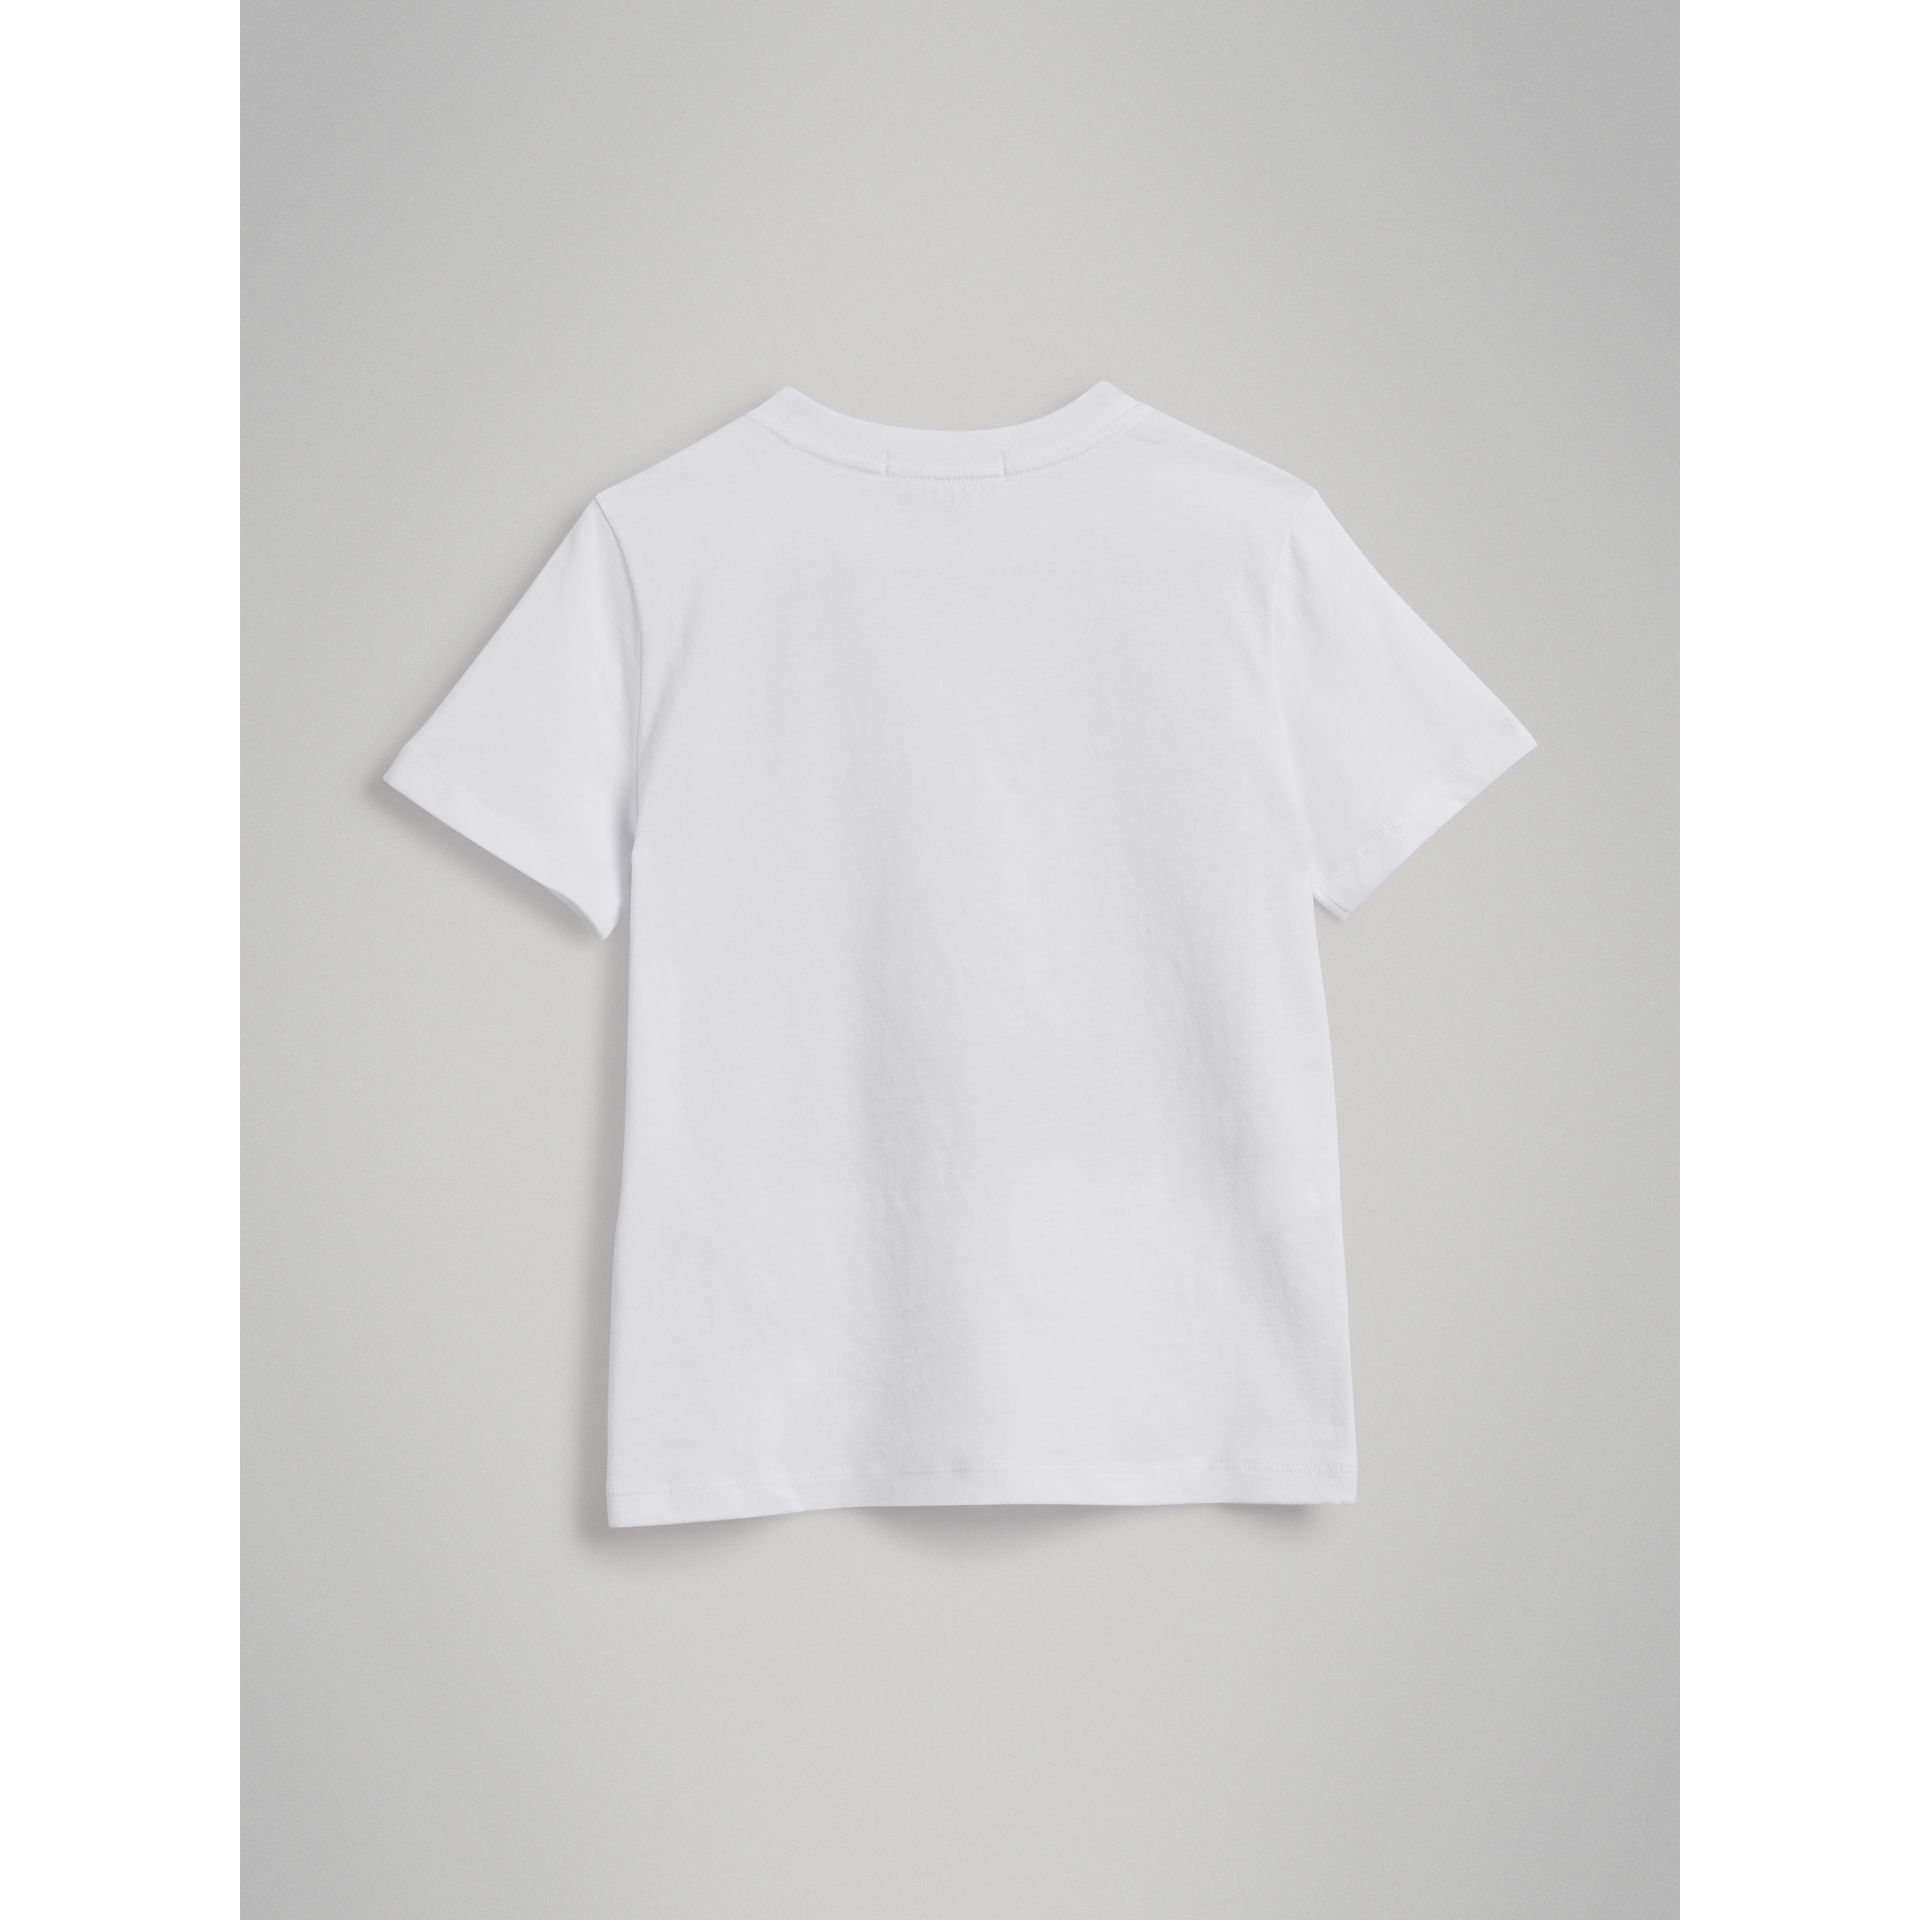 London Polaroid Print Cotton T-shirt in White - Boy | Burberry - gallery image 3